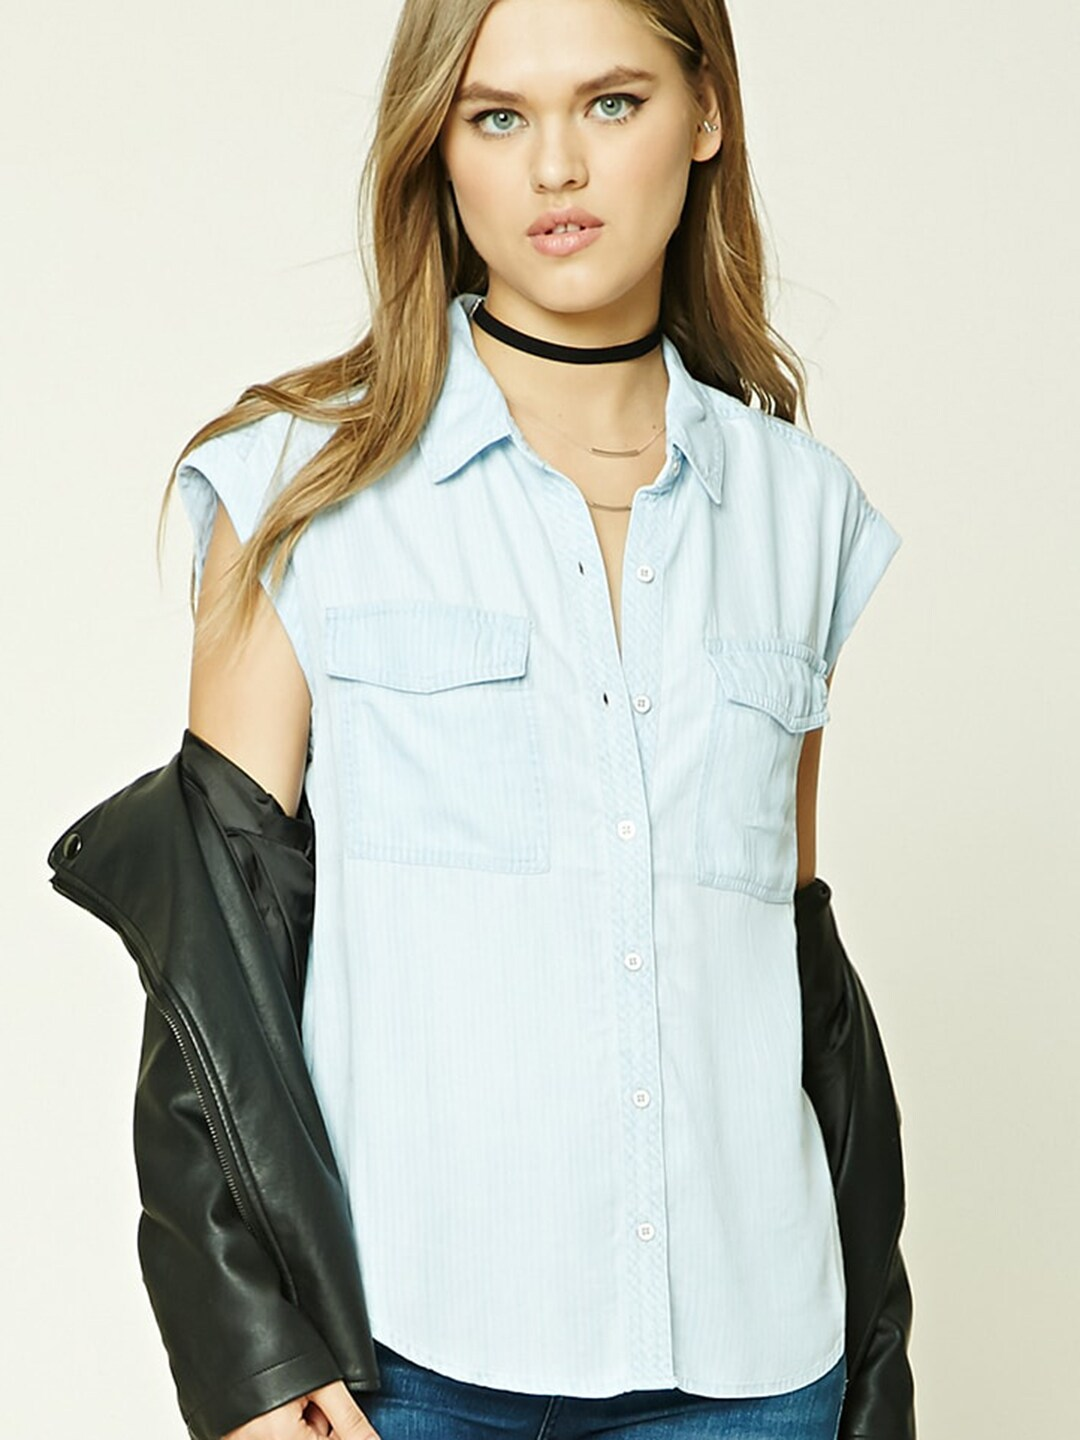 f4d757890b0 Forever 21 Shirts - Buy Forever 21 Shirts online in India